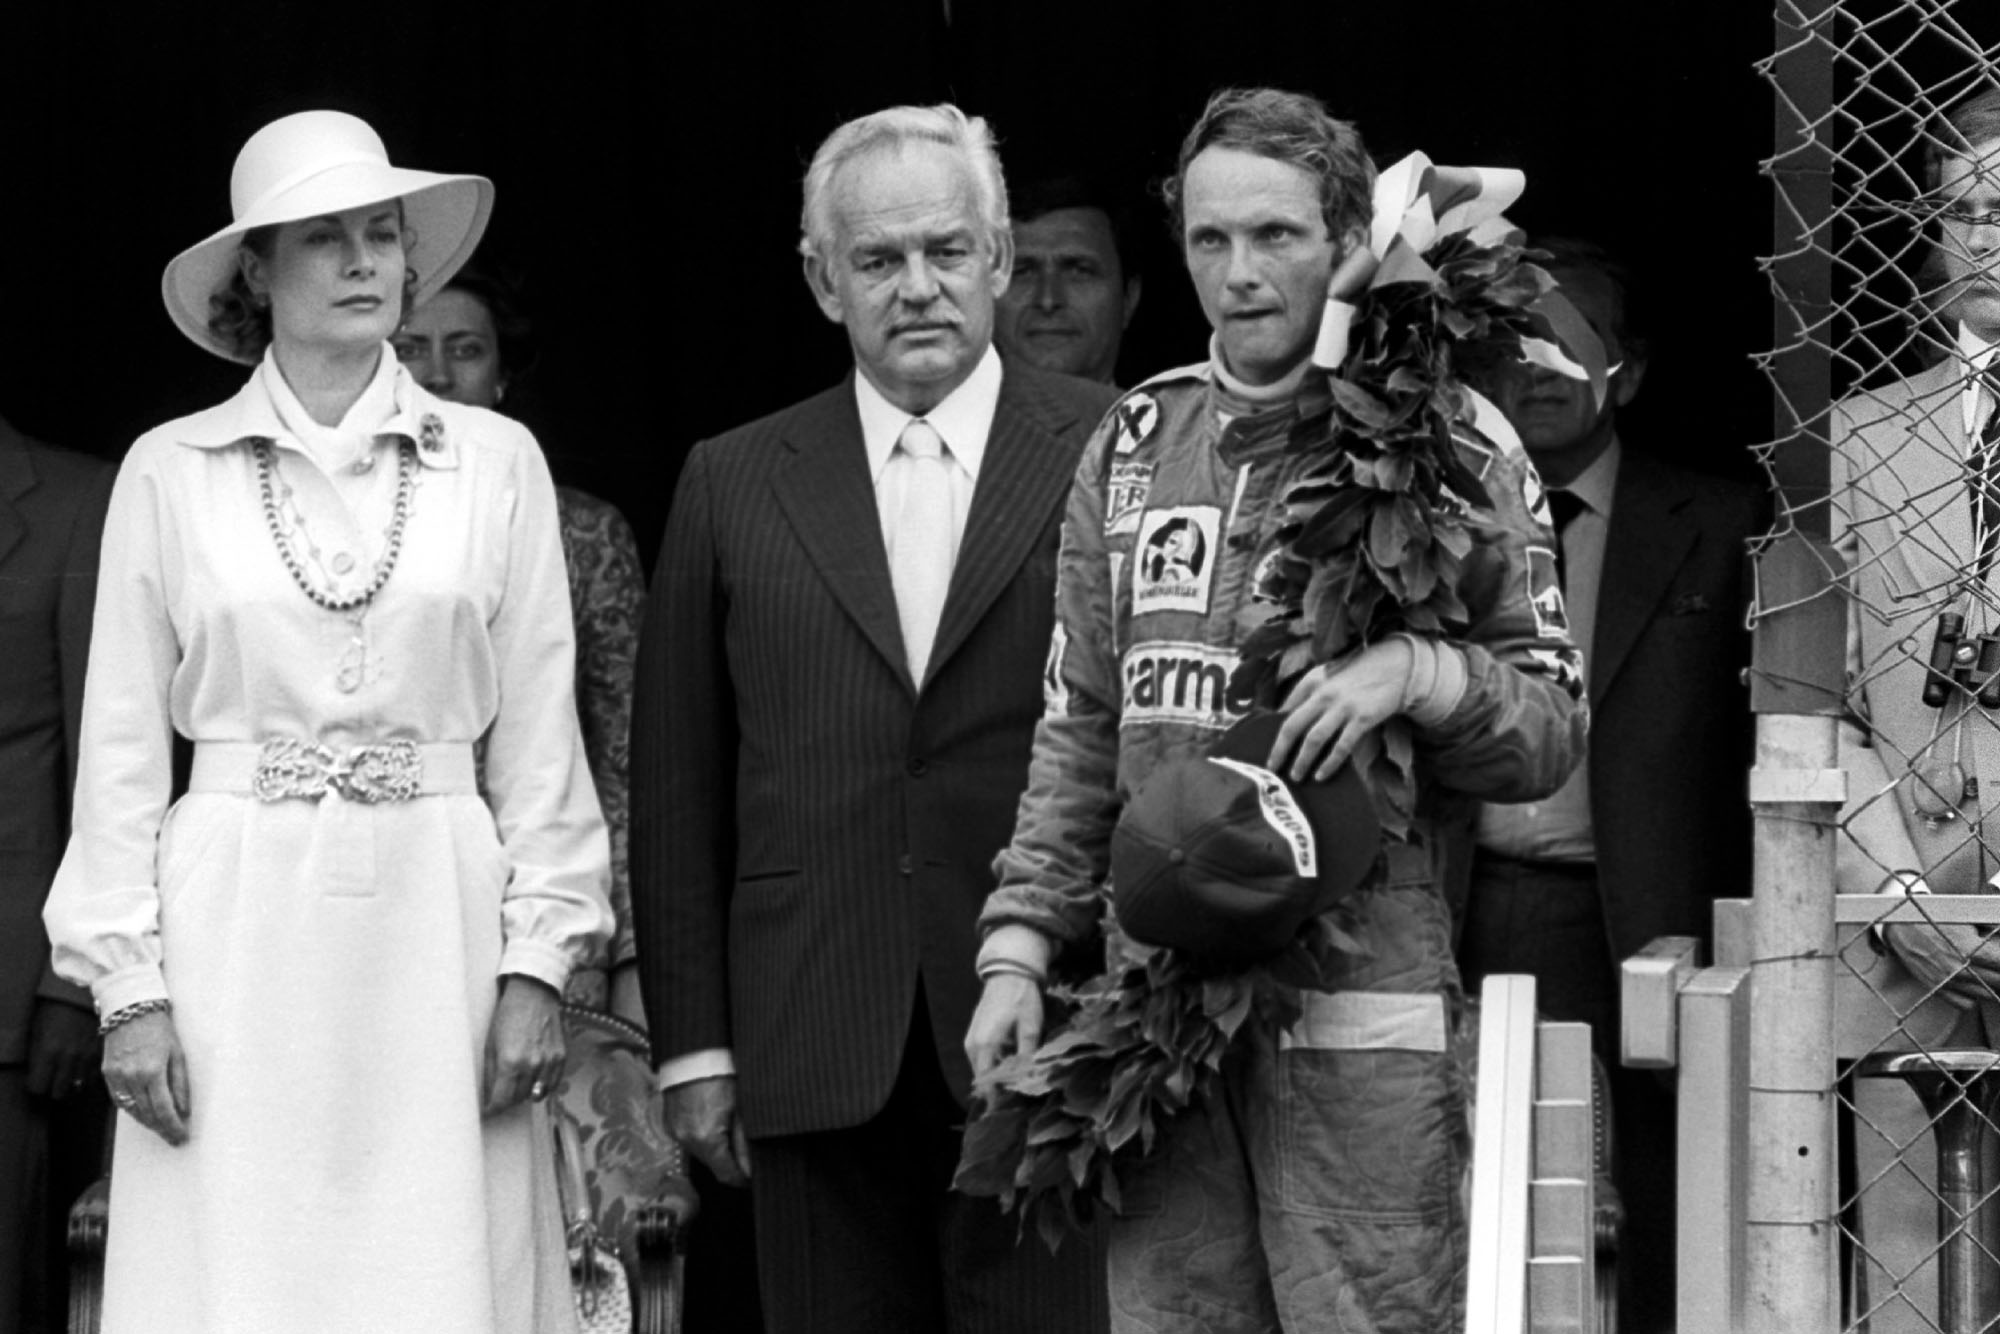 Niki Lauda stands on the podium after emerging victorious at the 1976 Monaco Grand Prix.